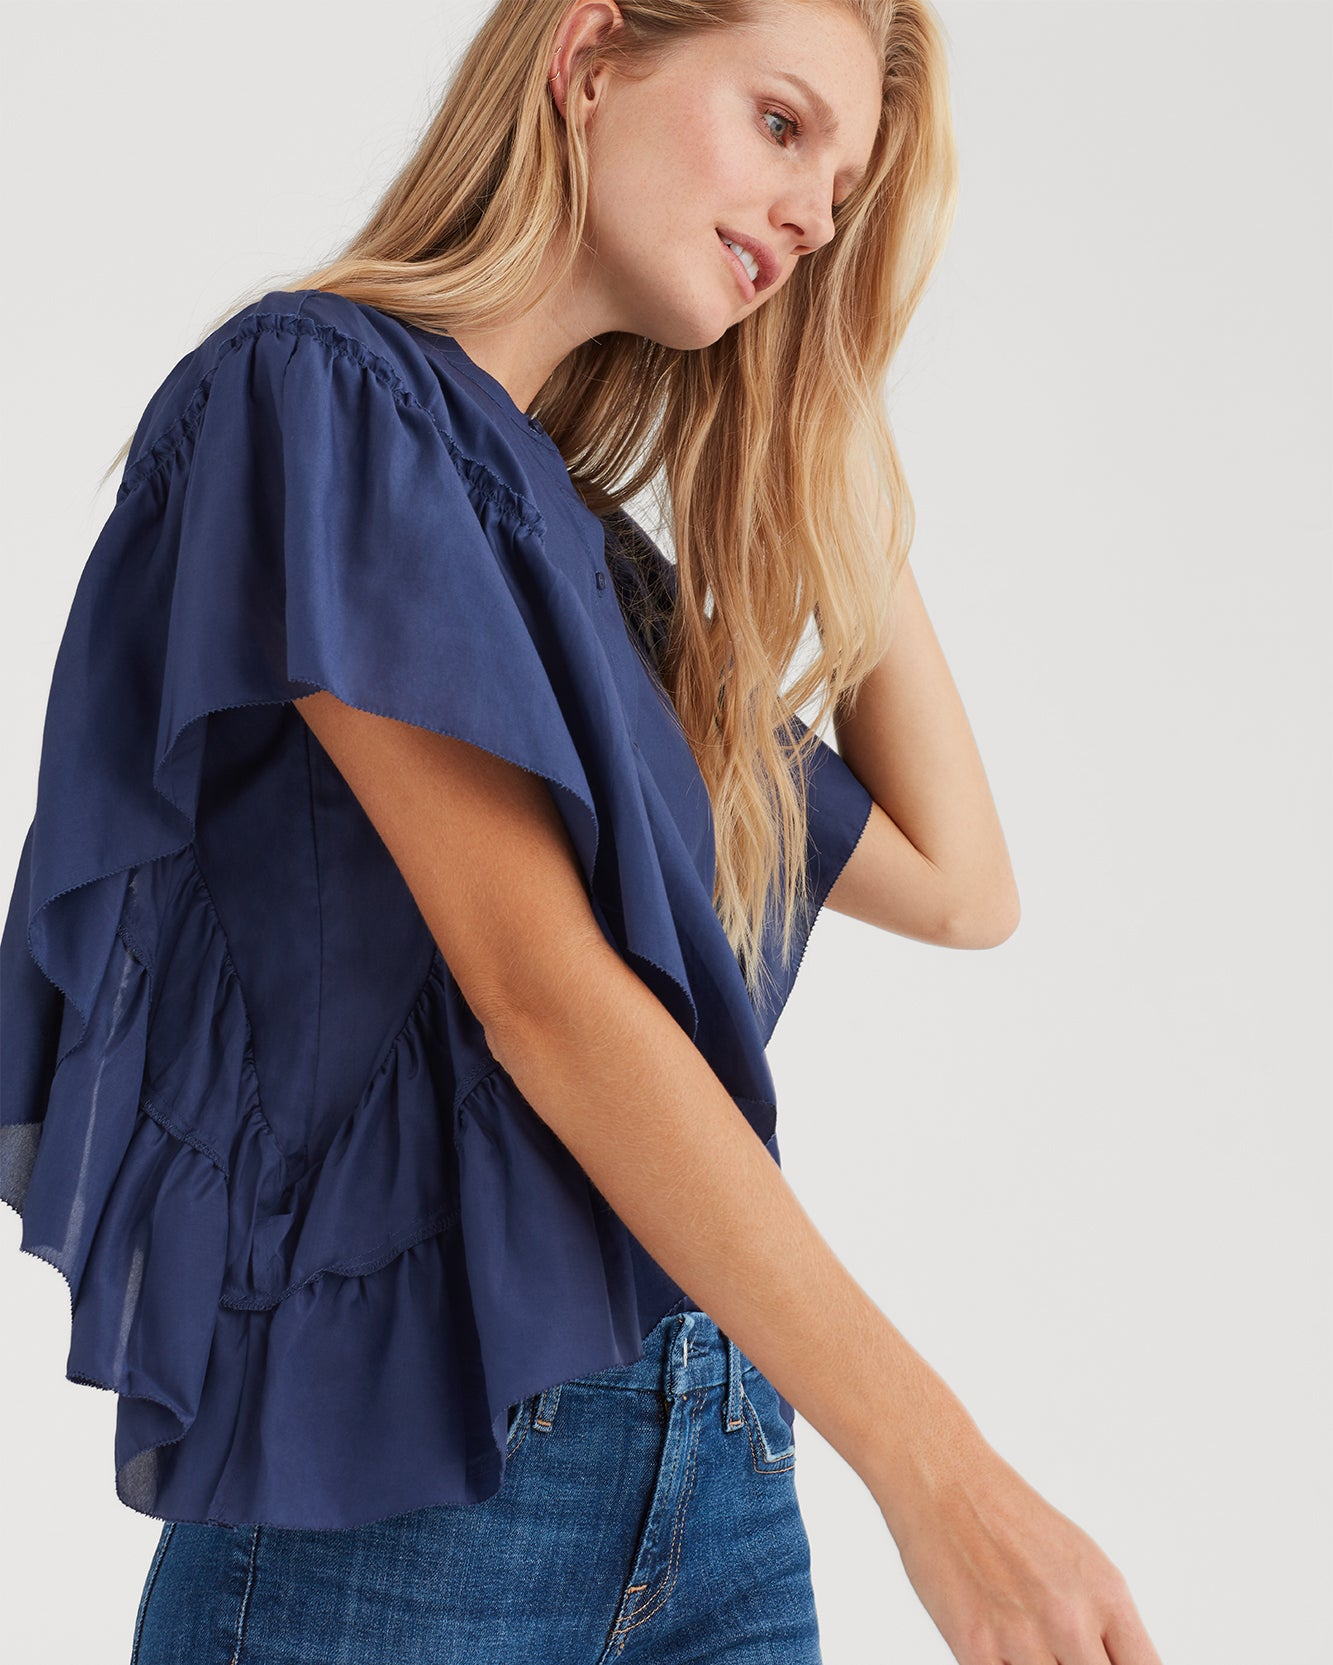 Image of Butterfly Sleeve Top in Midnight Sky